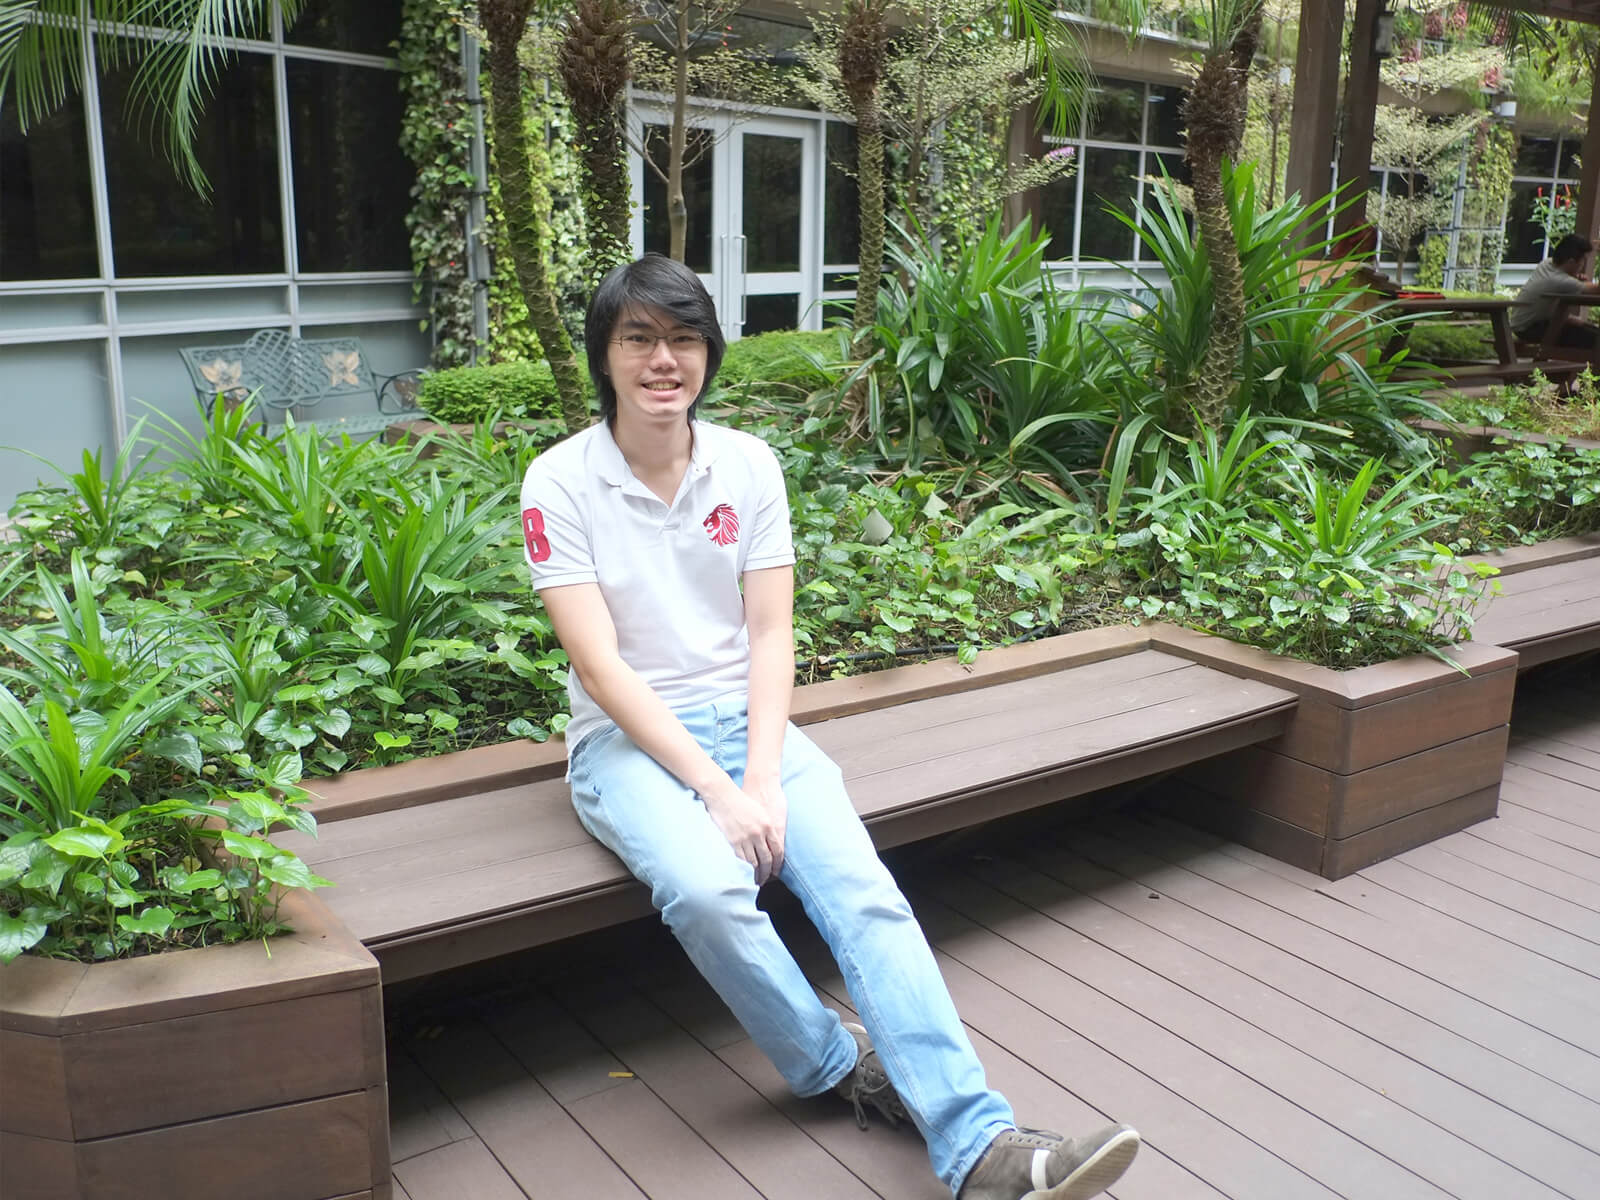 DigiPen graduate Cheng Ding Xiang poses for a photo sitting at a bench in an atrium area full of plants and trees